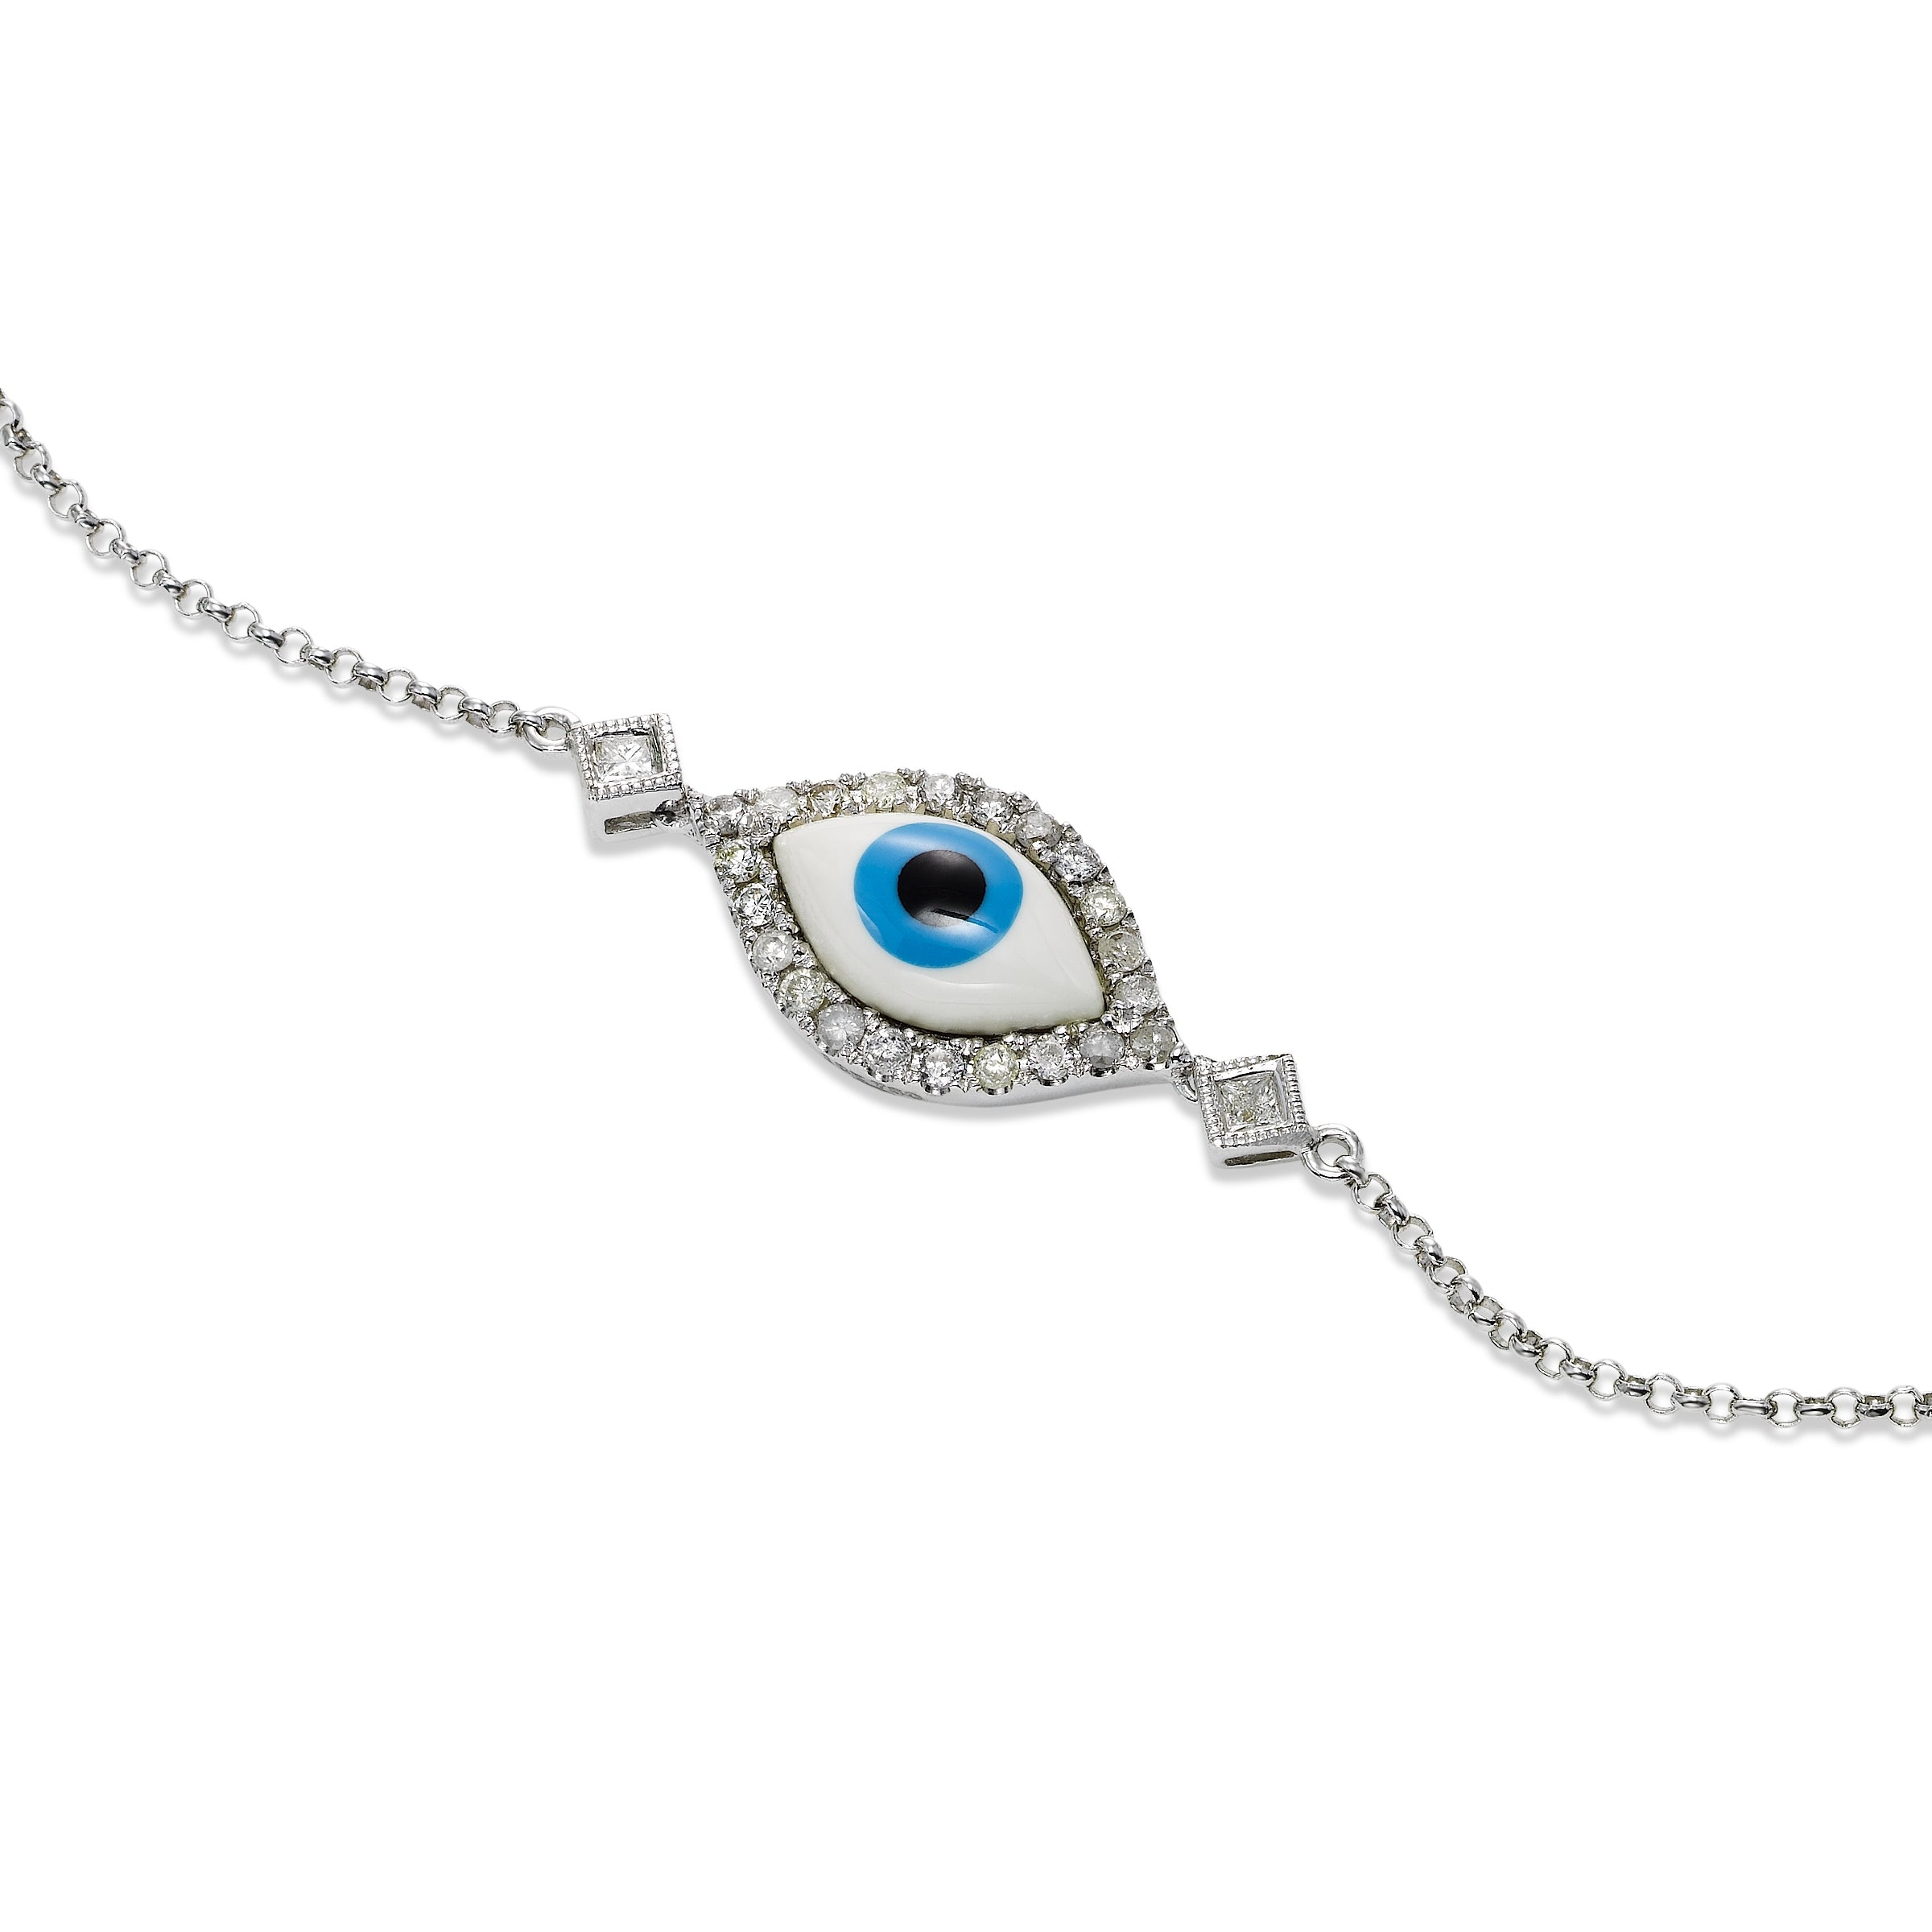 Diamond and Enamel Evil Eye Flexible Bracelet, 18K White Gold